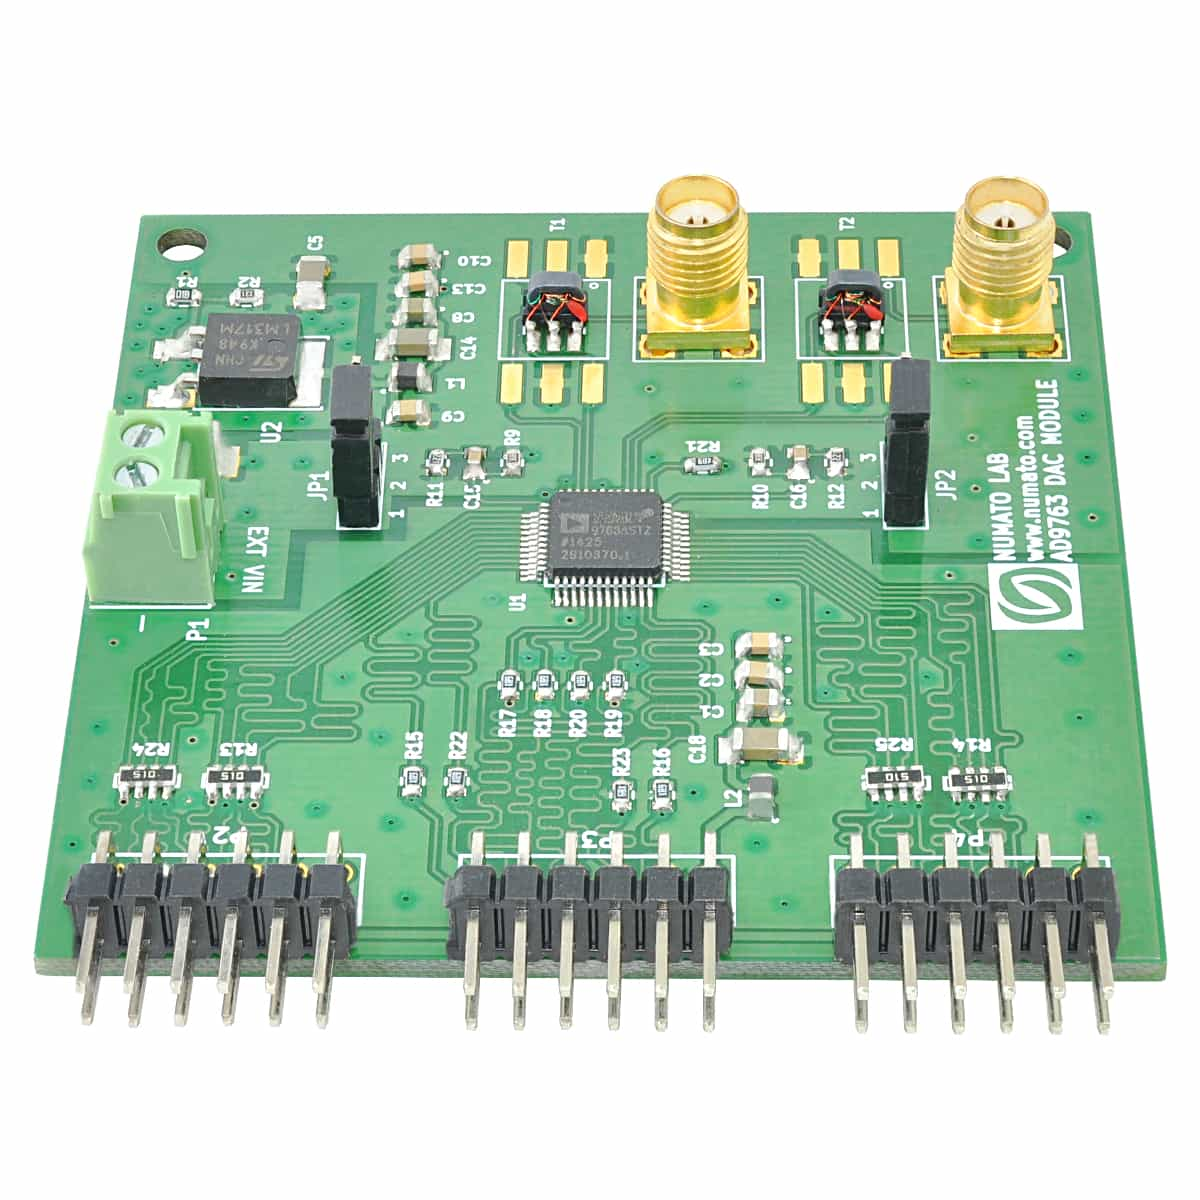 AD9763 DAC Expansion Module with 125 MSPS update rate   Numato Lab